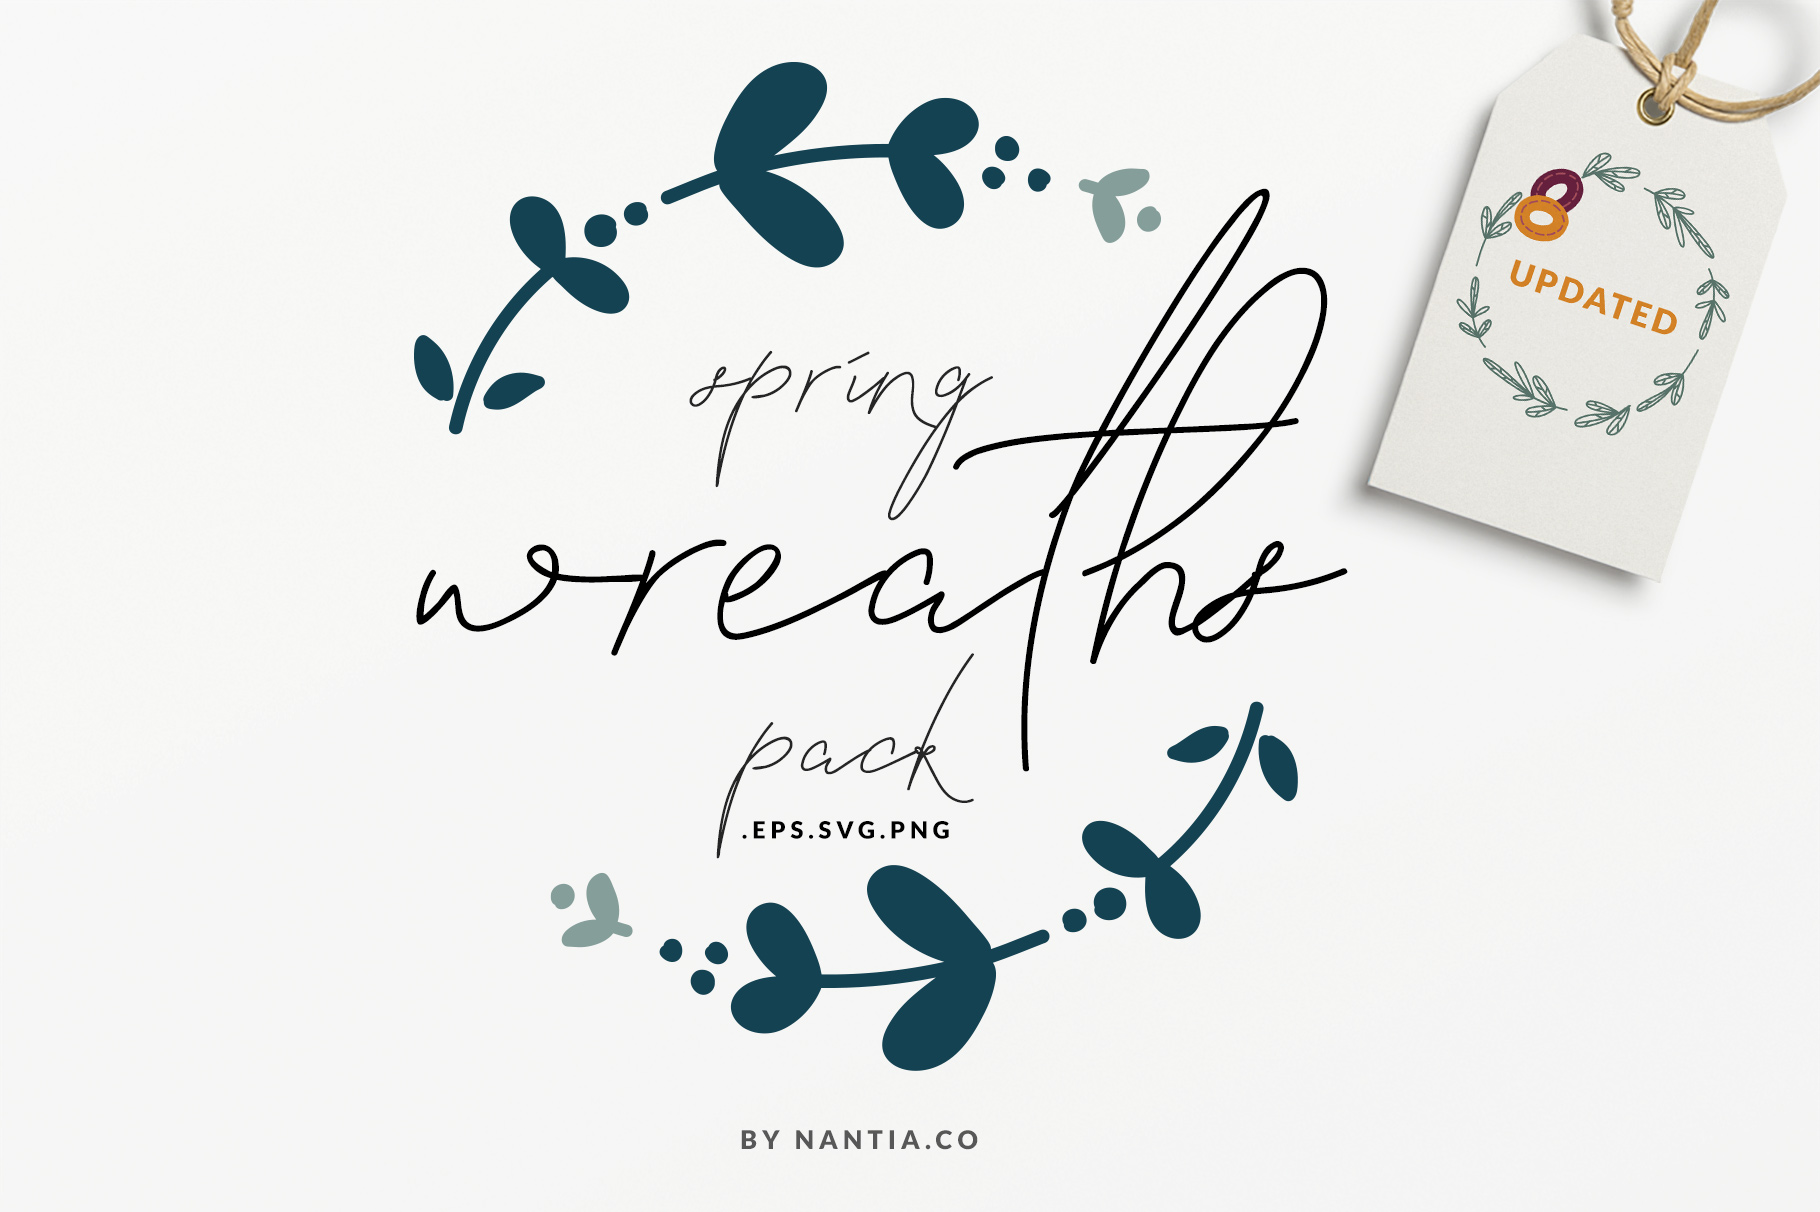 20 Spring Wreaths Vector Pack example image 1